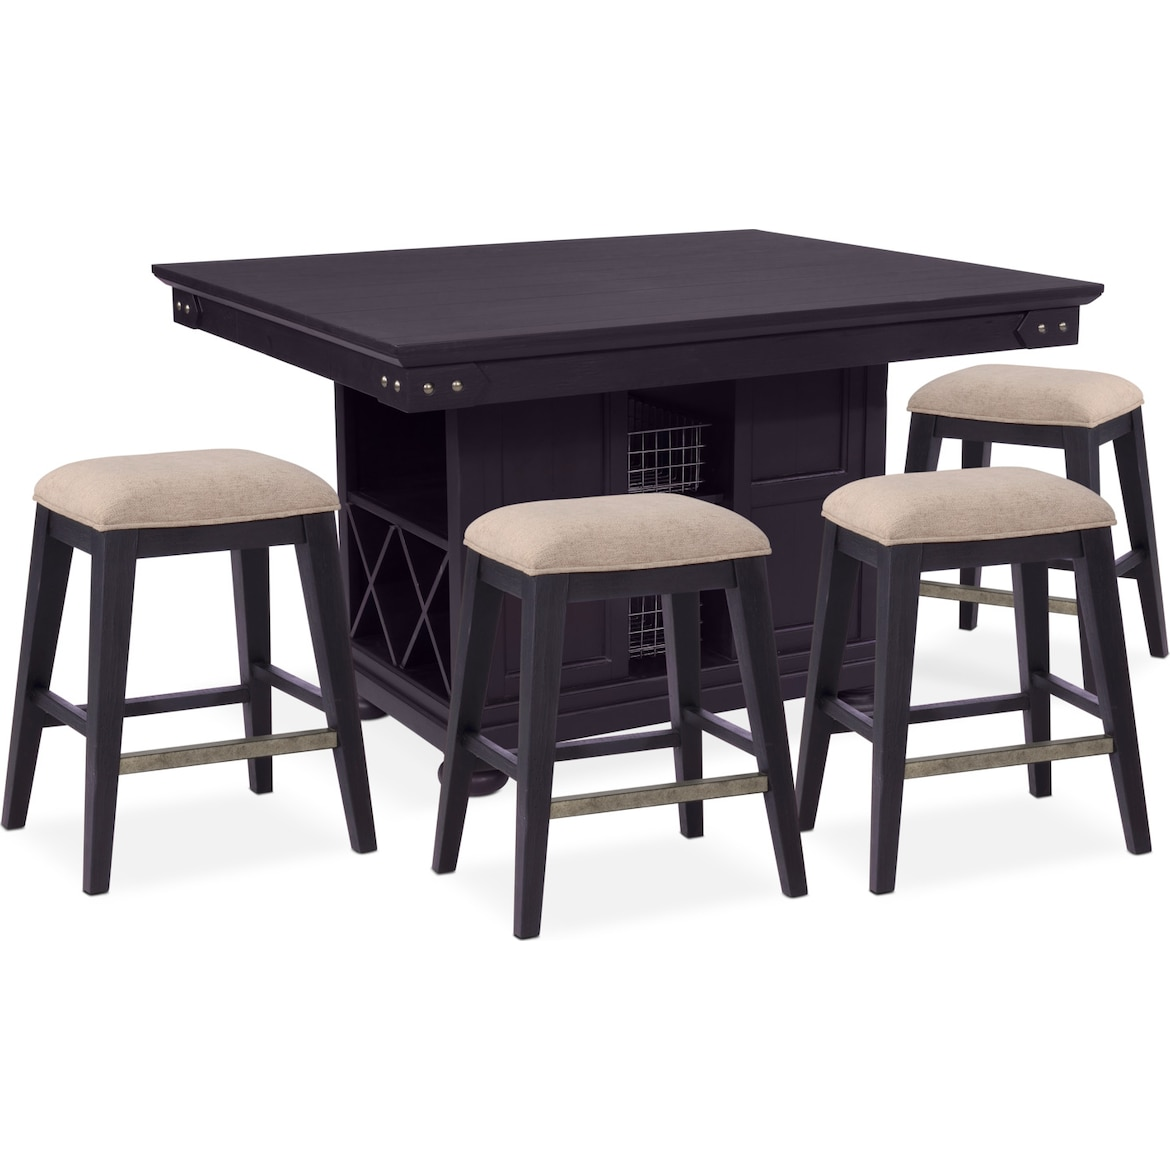 Kitchen Island Taller Than Counters: New Haven Counter-Height Kitchen Island And 4 Backless